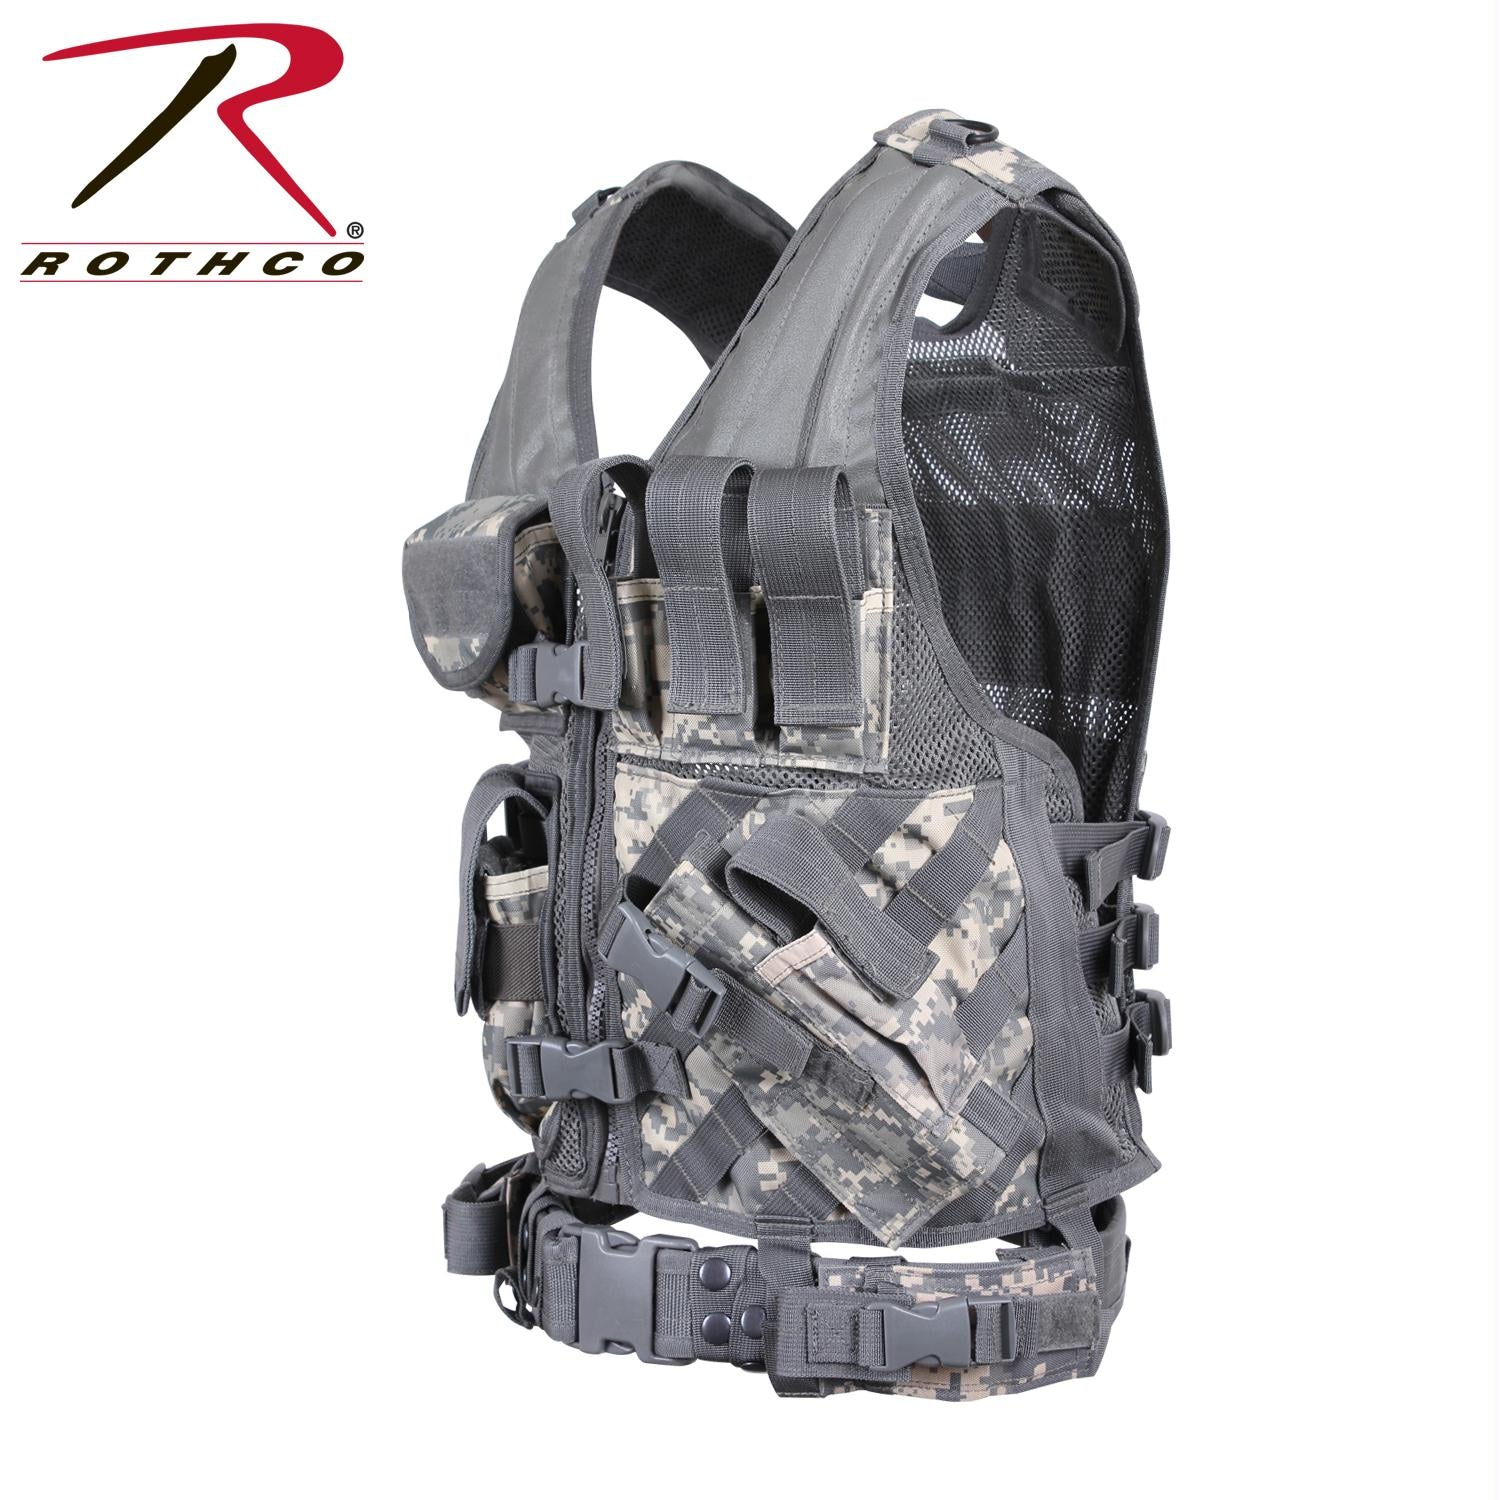 Rothco Cross Draw MOLLE Tactical Vest - ACU Digital Camo / Regular